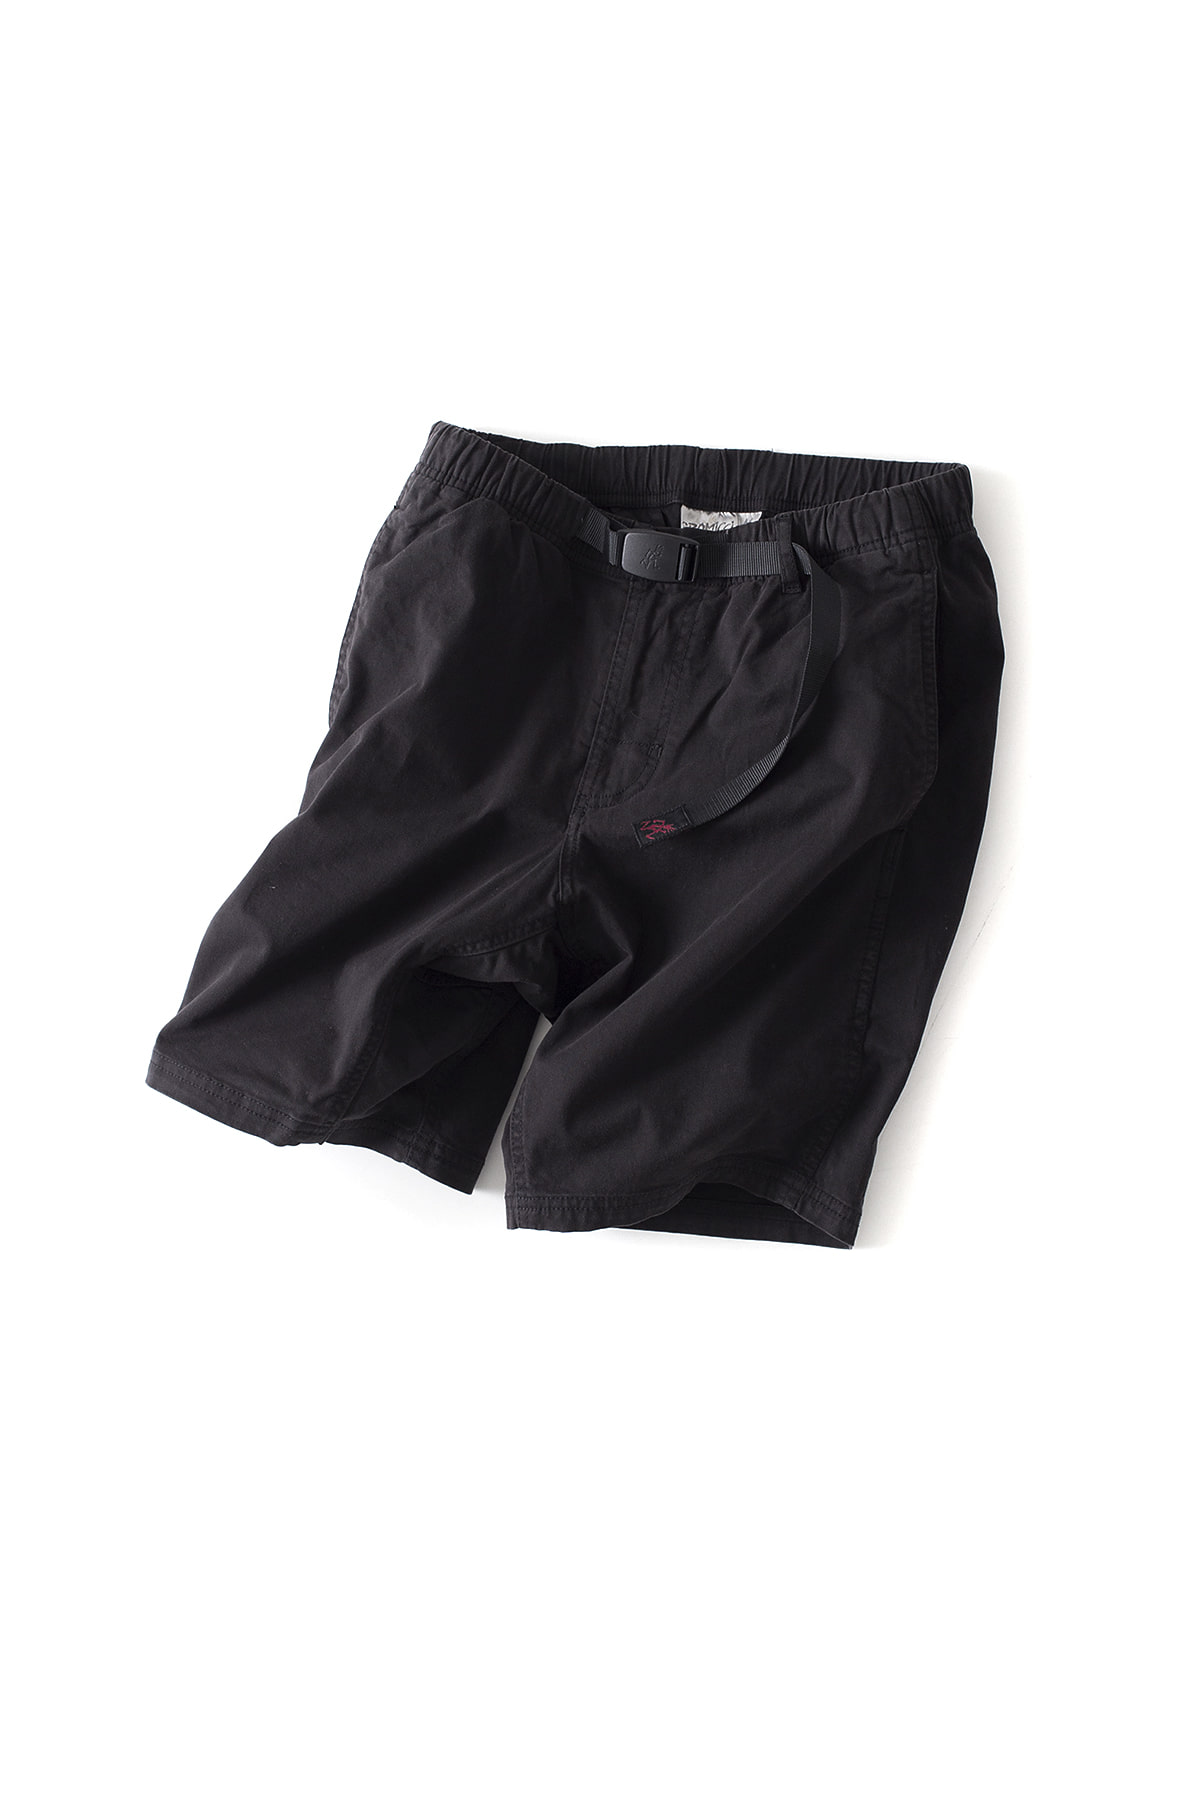 Gramicci : NN-Shorts (Black)